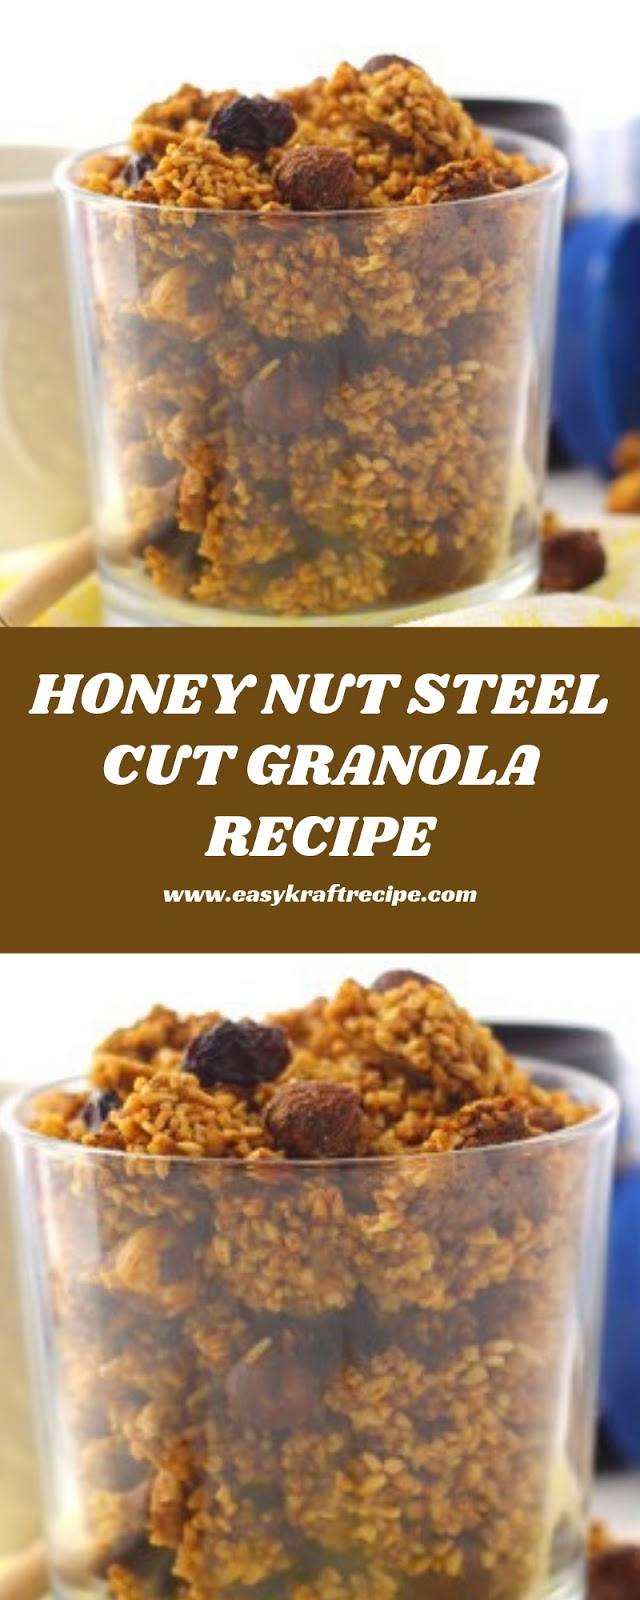 HONEY NUT STEEL CUT GRANOLA